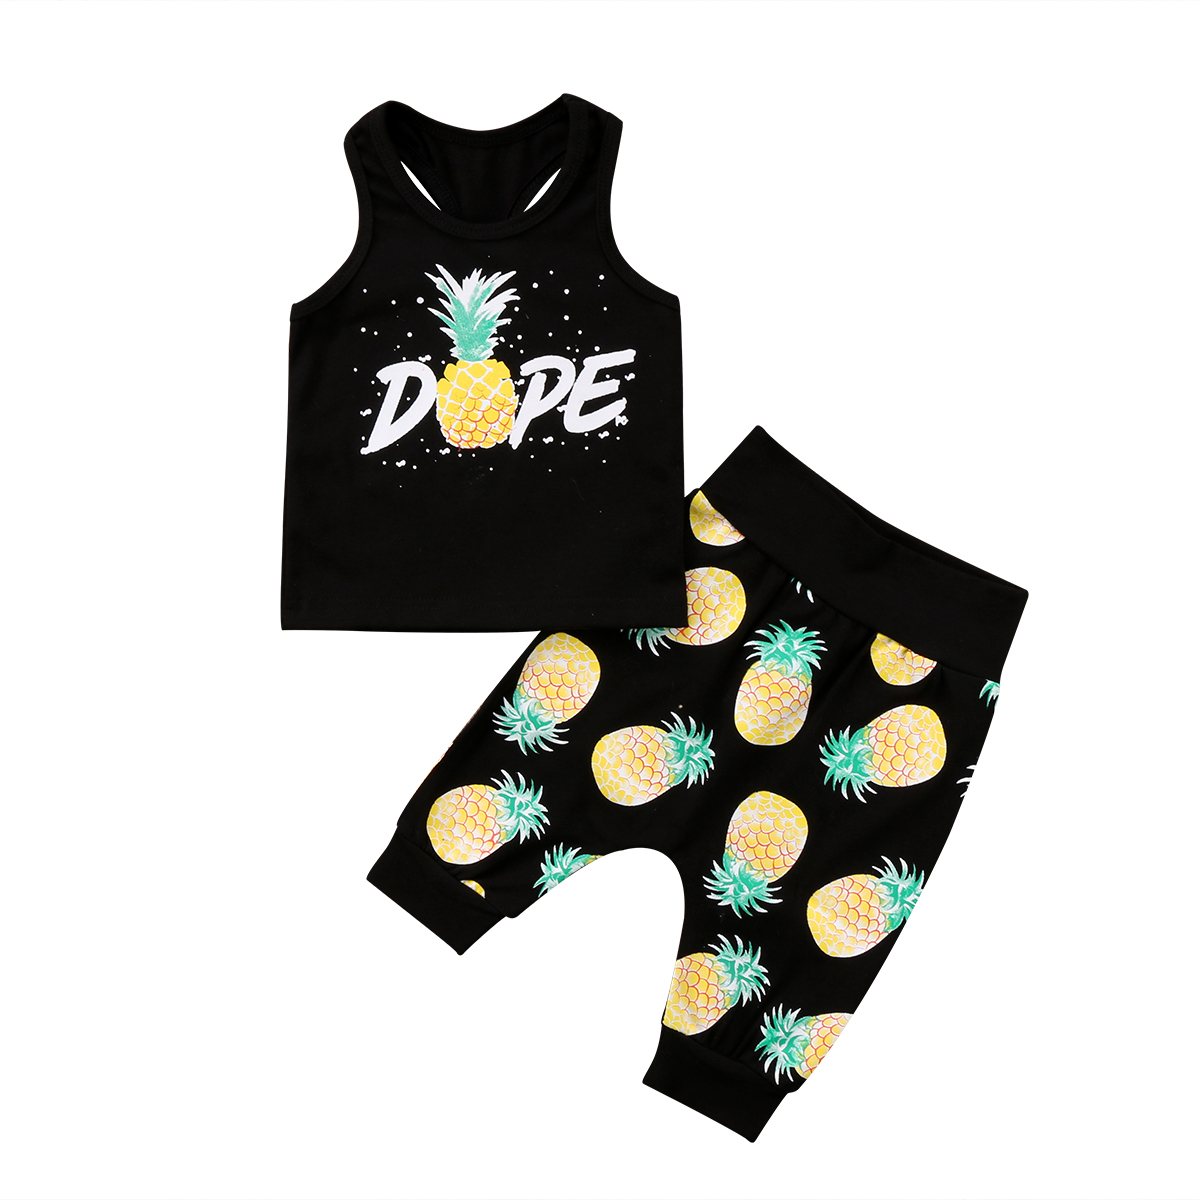 2Pcs Toddler Infant Kid Baby Boys Pineapple Prints Clothing Sets T-shirt Tops+Pants Outfits 2018 Summer New